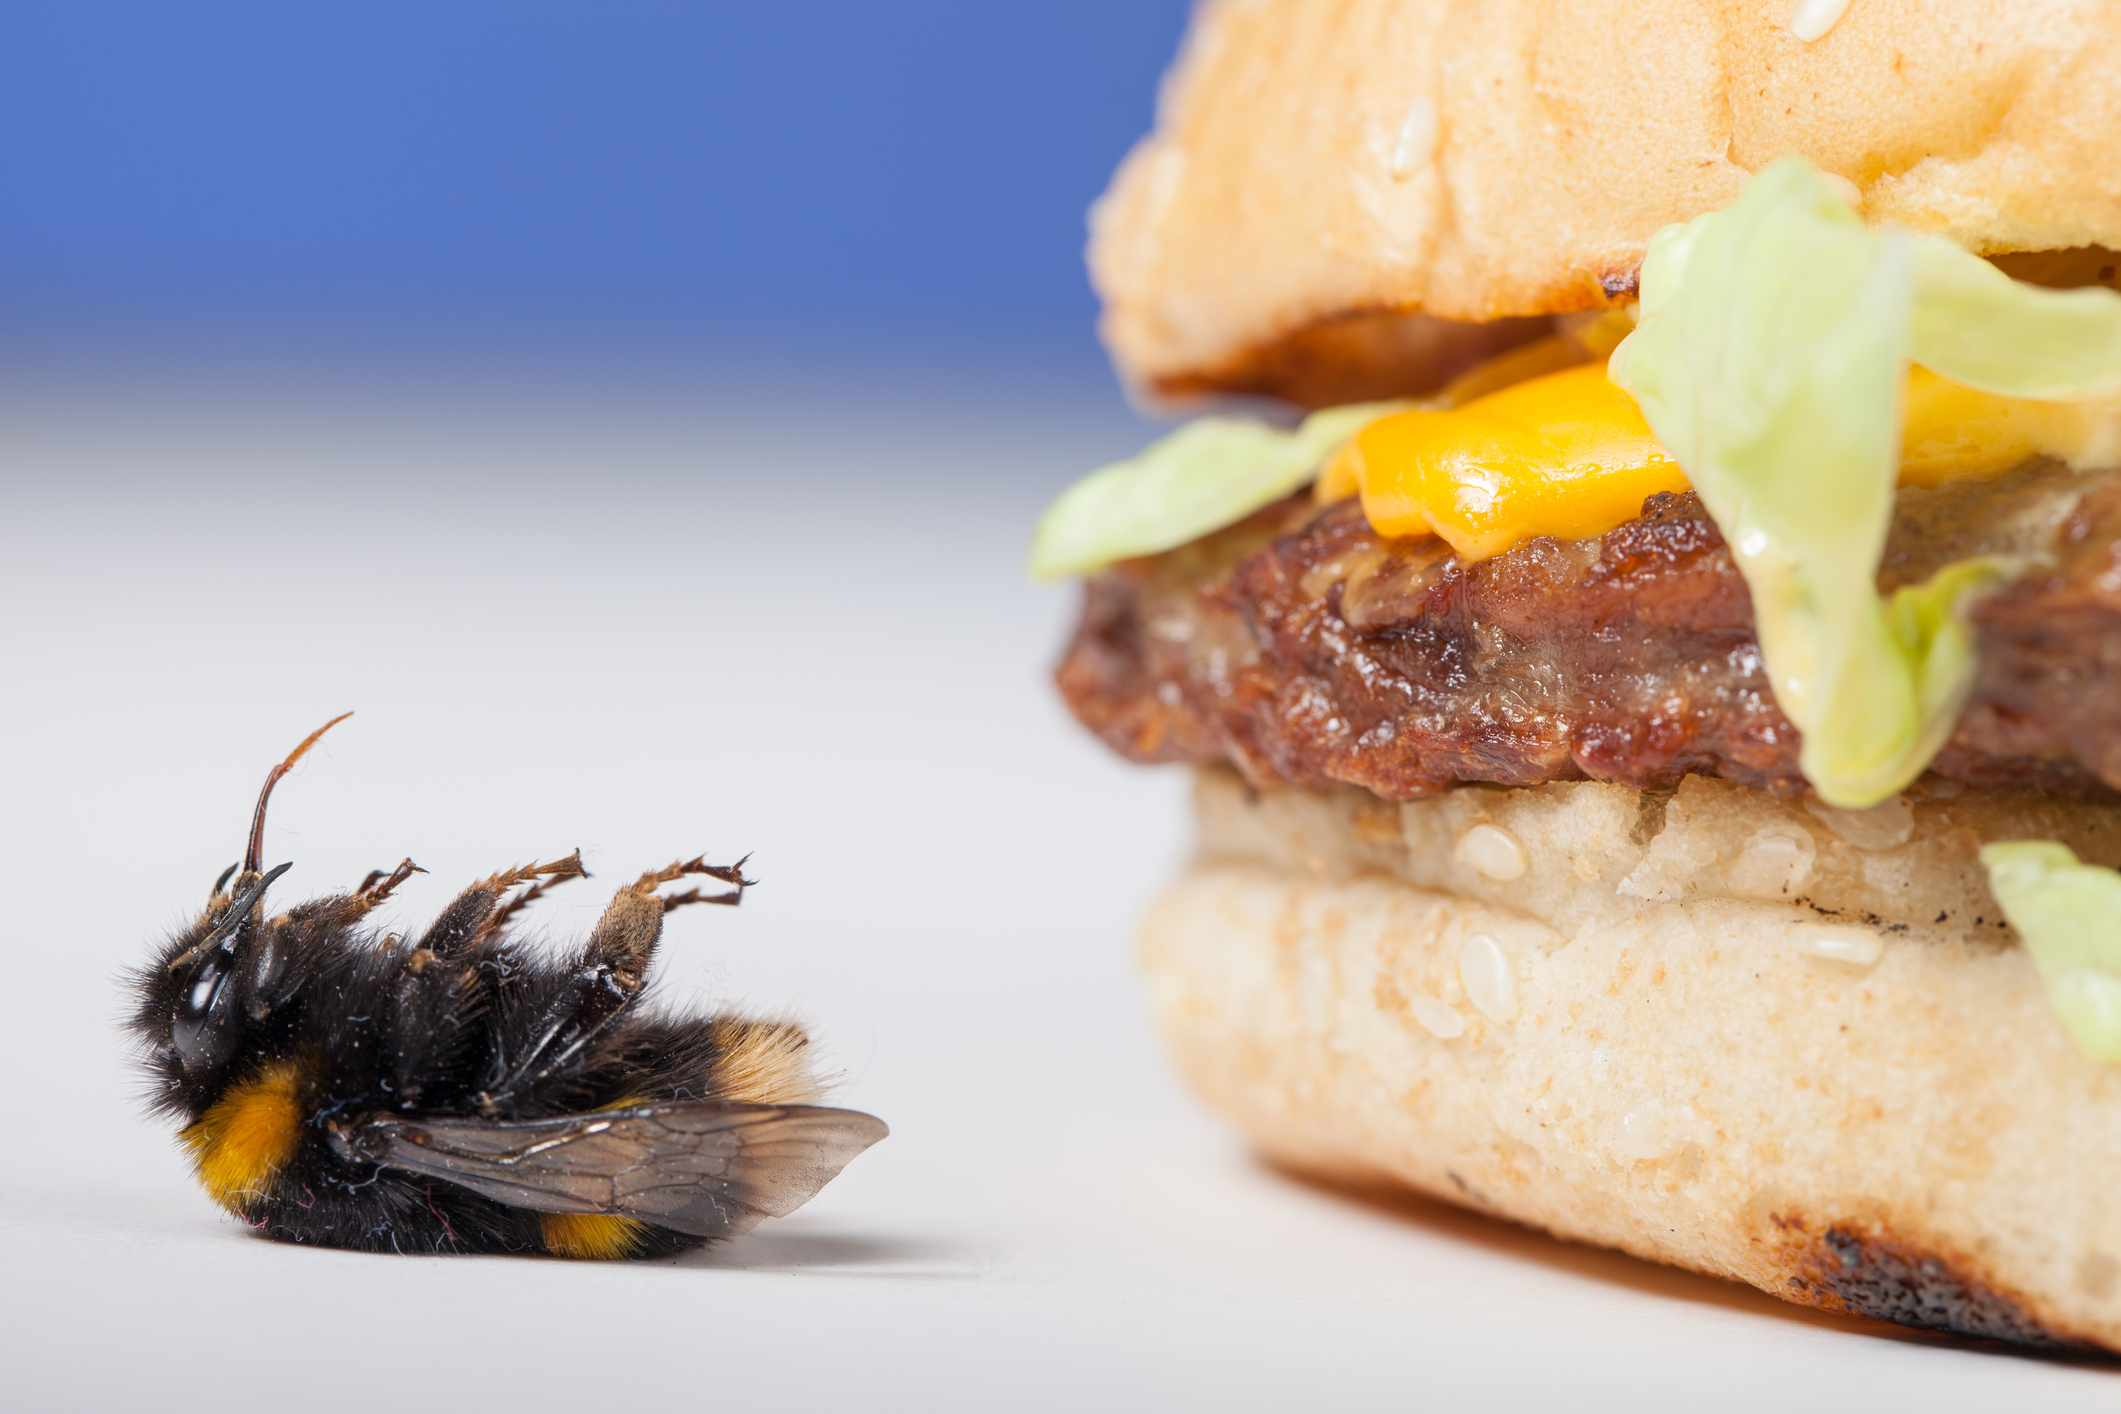 Dead bee lying next to a burger © Getty Images